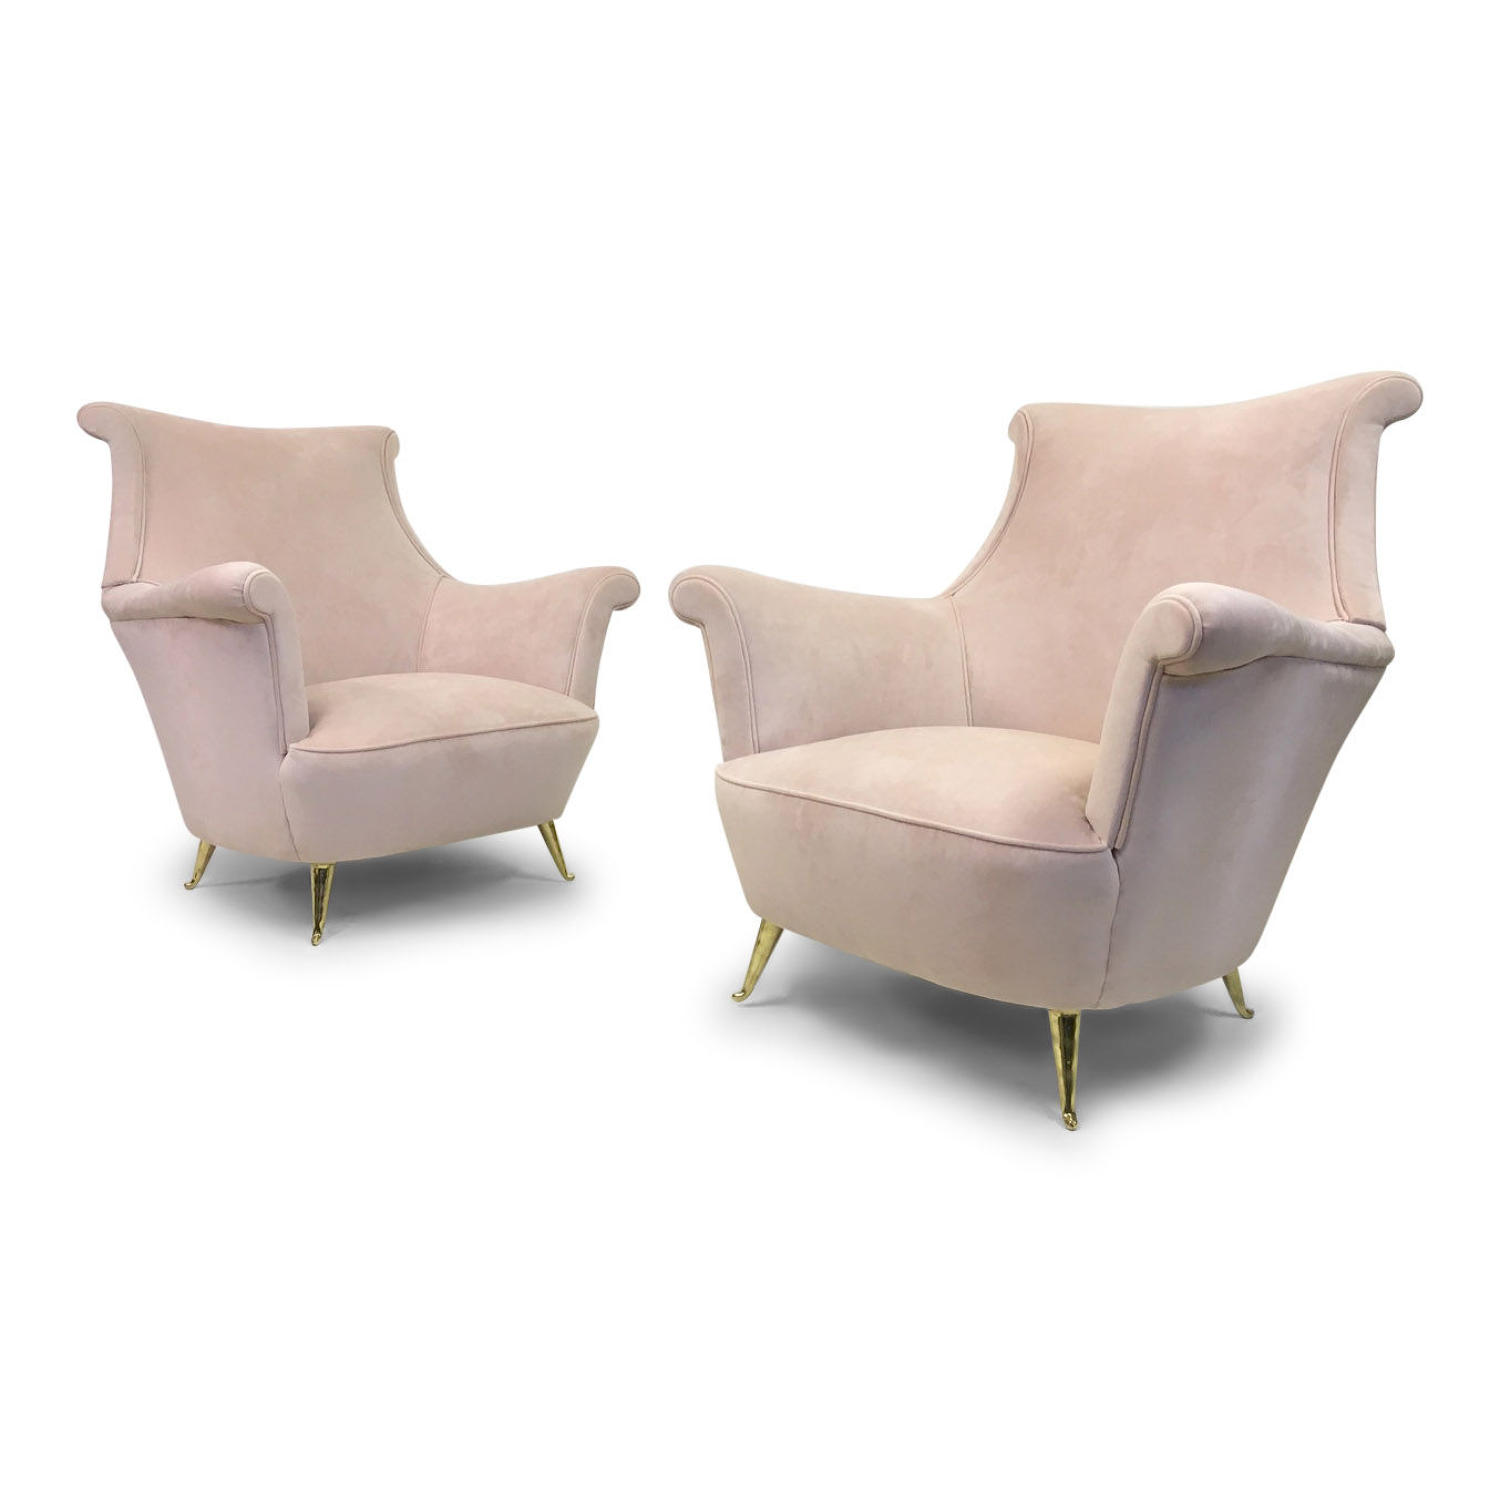 A pair of 1950s Italian armchairs in pink velvet